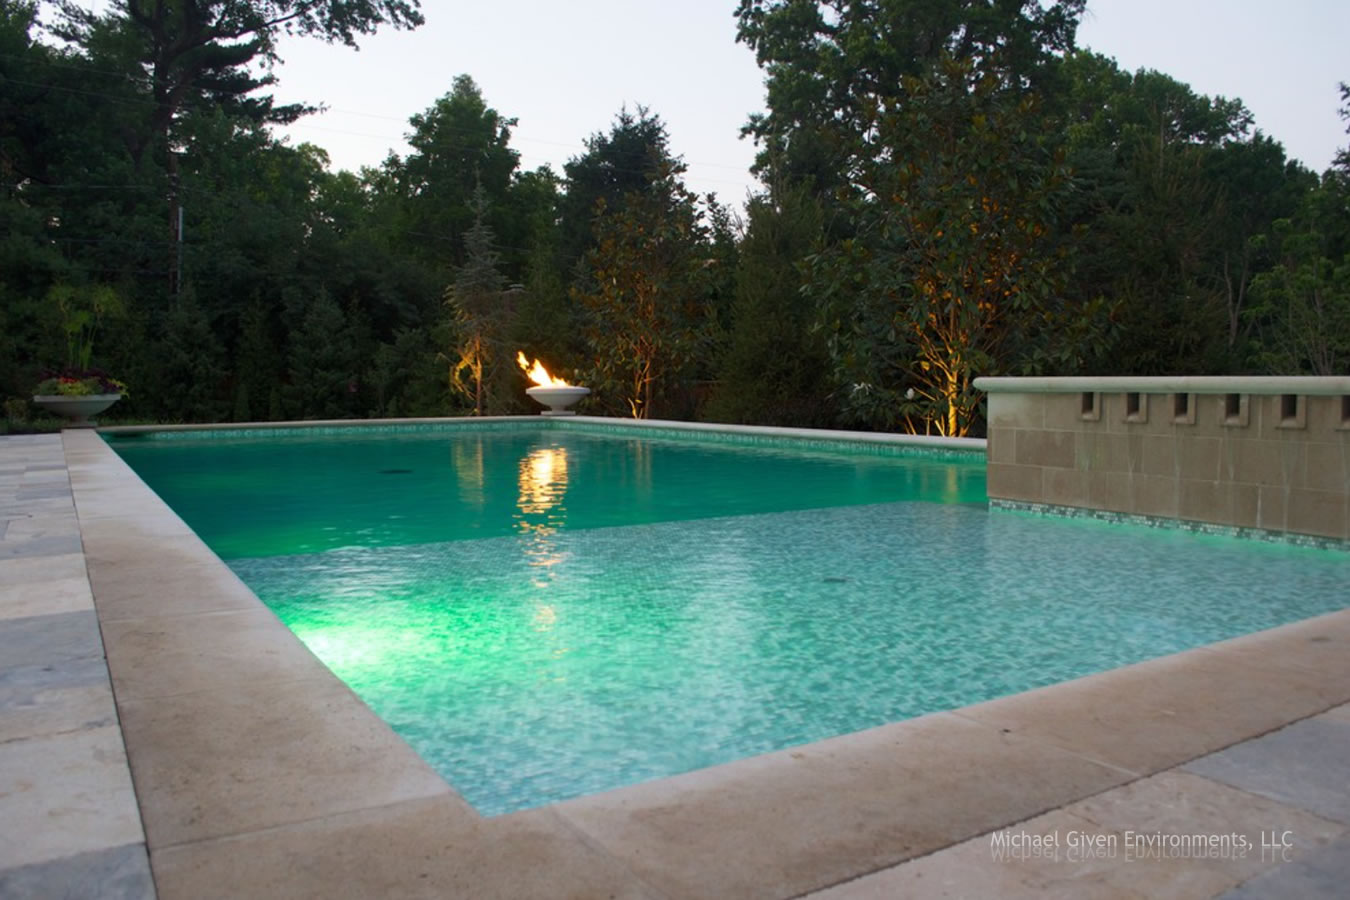 Pool outdoor living environment gallery by michael given for Pool design kansas city